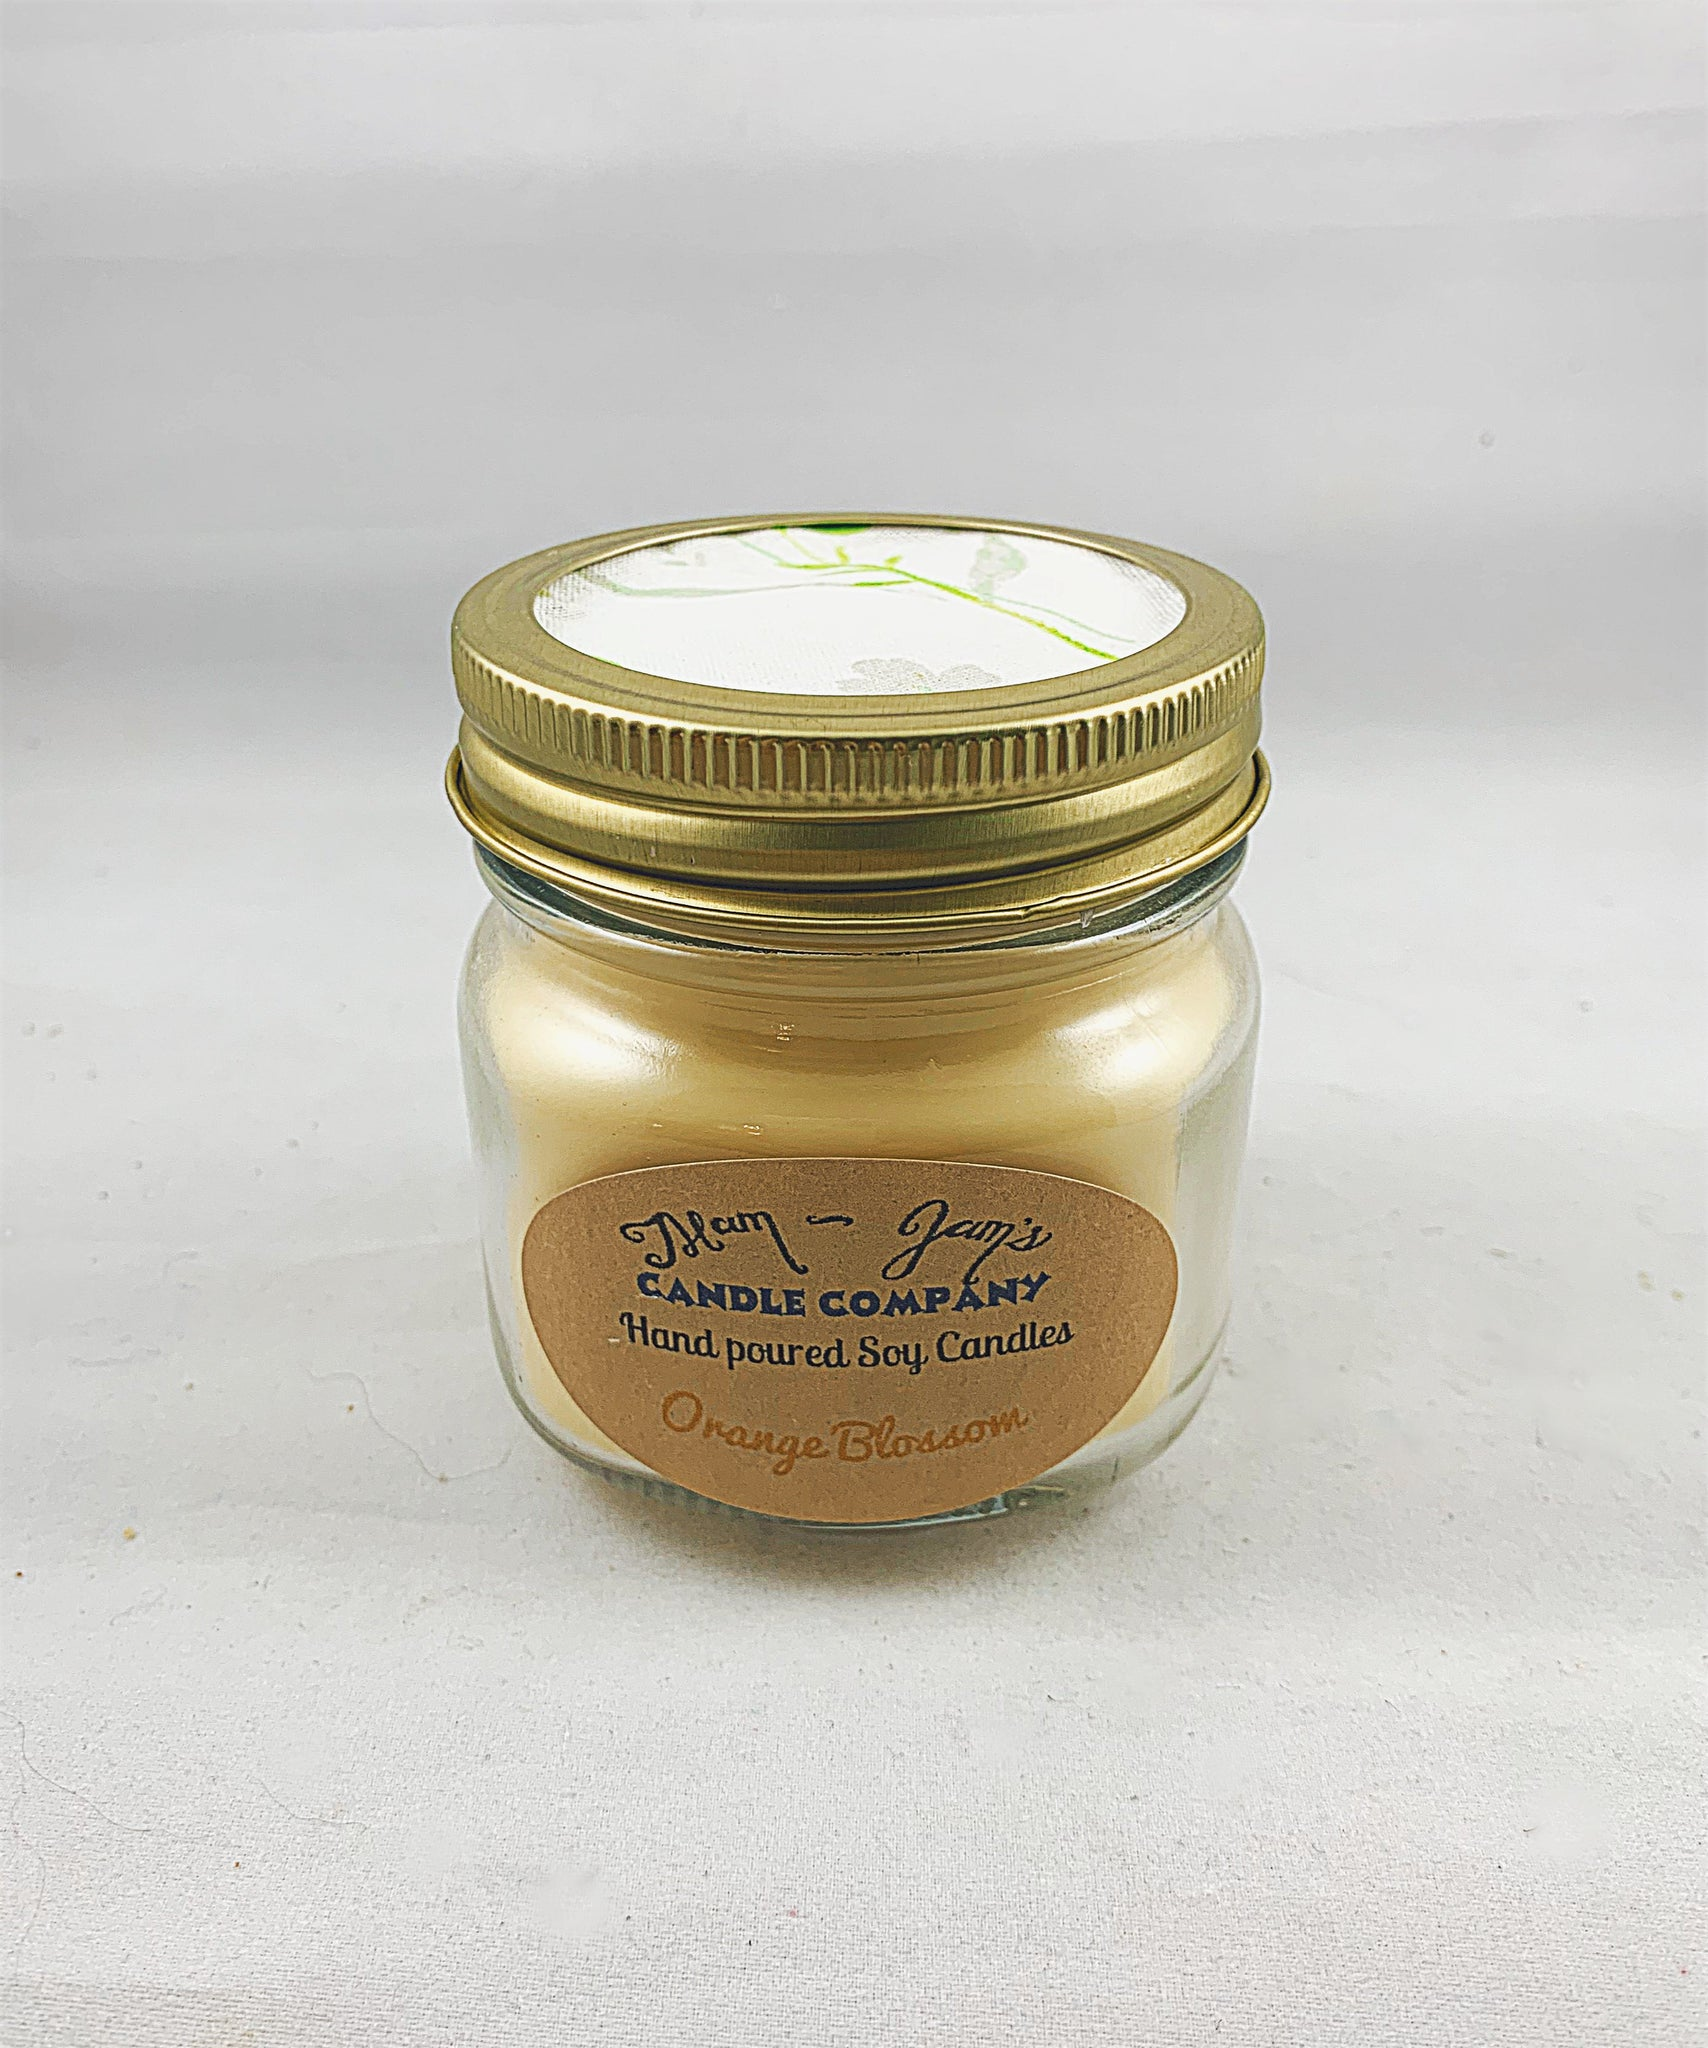 Orange Blossom - Mam Jam's Candle Company